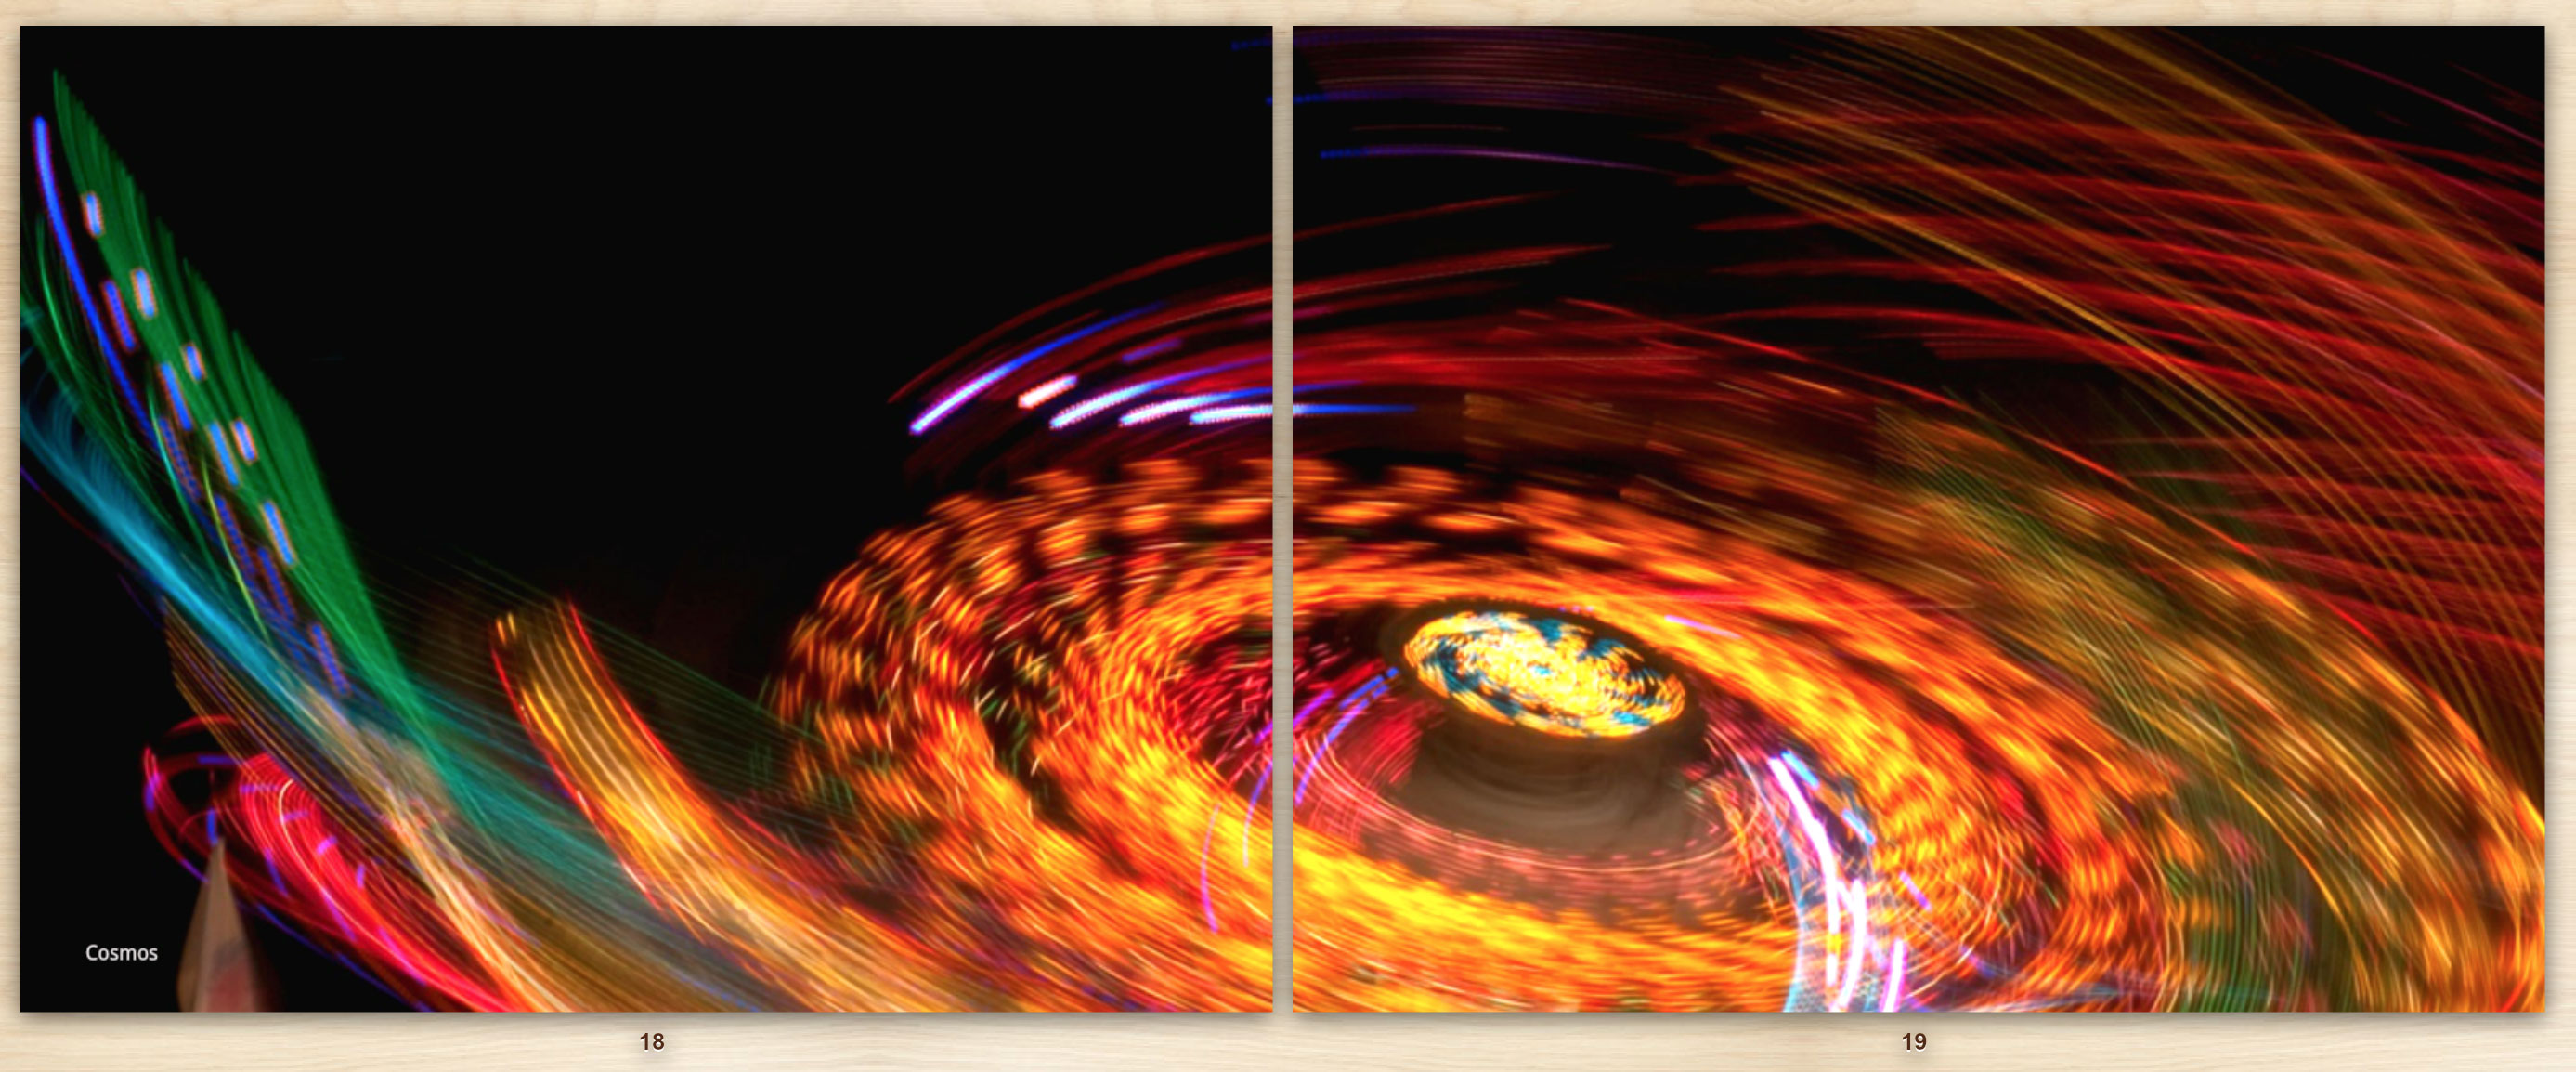 Cosmos-Overcrowded-Midway-The-Colors-Collection-Volume-1-by-Debra-Fisher-Goldstein